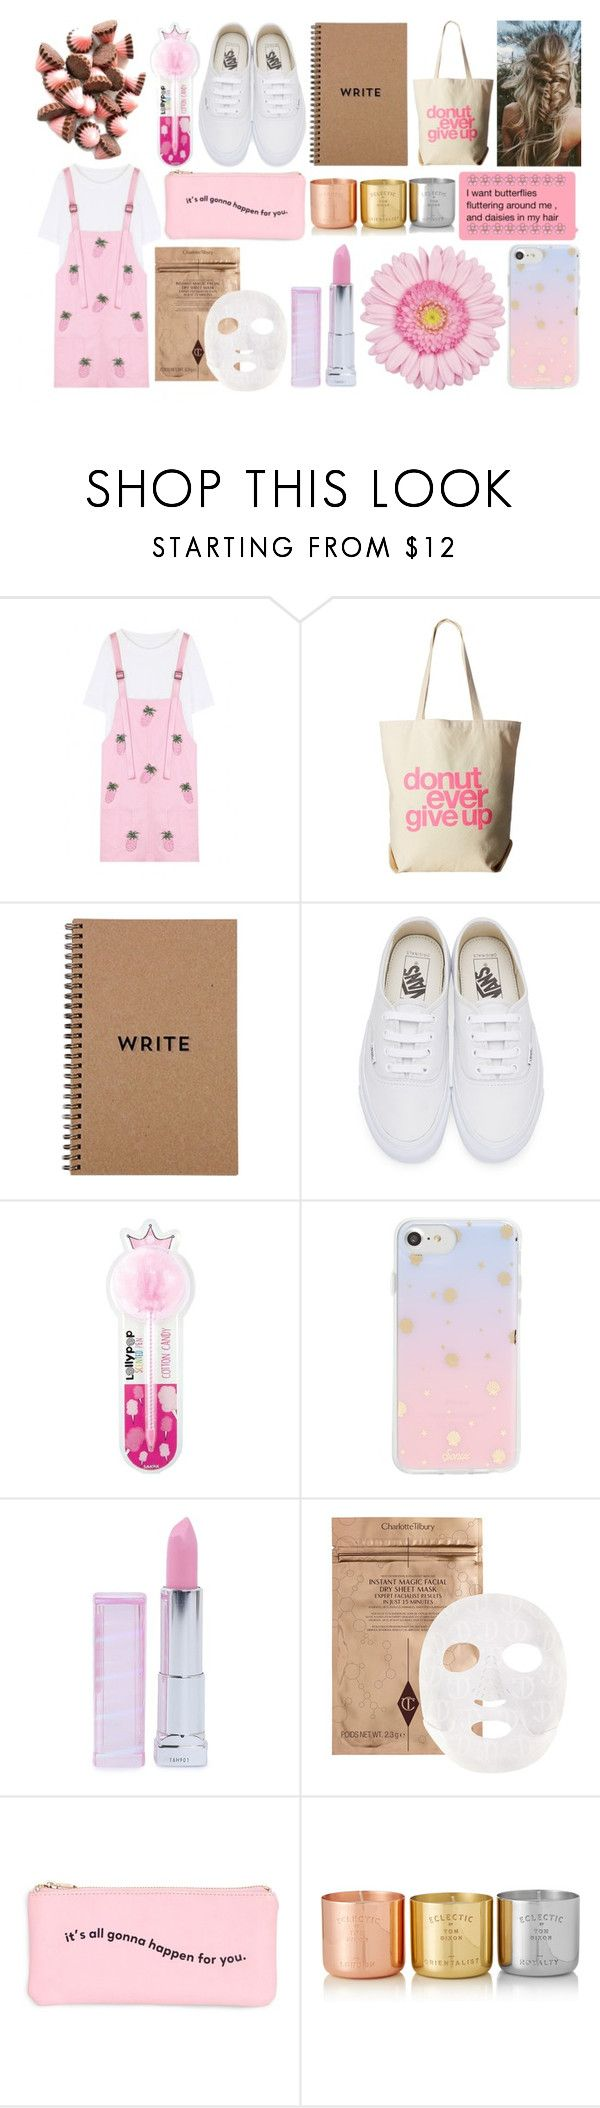 """""""Little Diva"""" by niivii on Polyvore featuring WithChic, Dogeared, Brika, Vans, International Arrivals, Sonix, Maybelline, ban.do and Tom Dixon"""